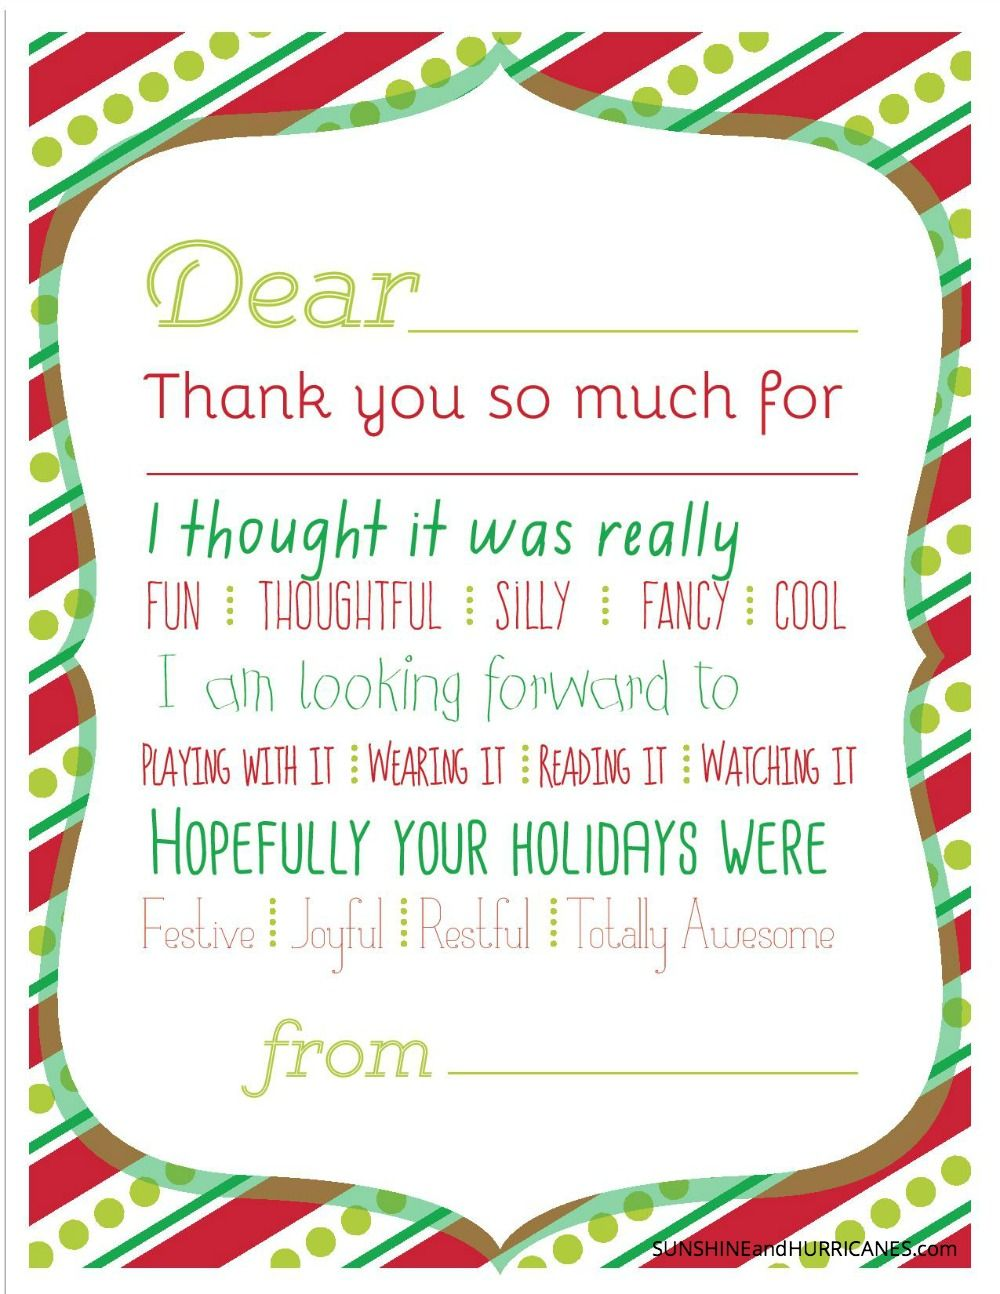 Make Sending Thank You Notes To Friends And Relatives Fun For Your Kids With These Adorable Fill In T Printable Thank You Cards Christmas Thank You Kids Cards